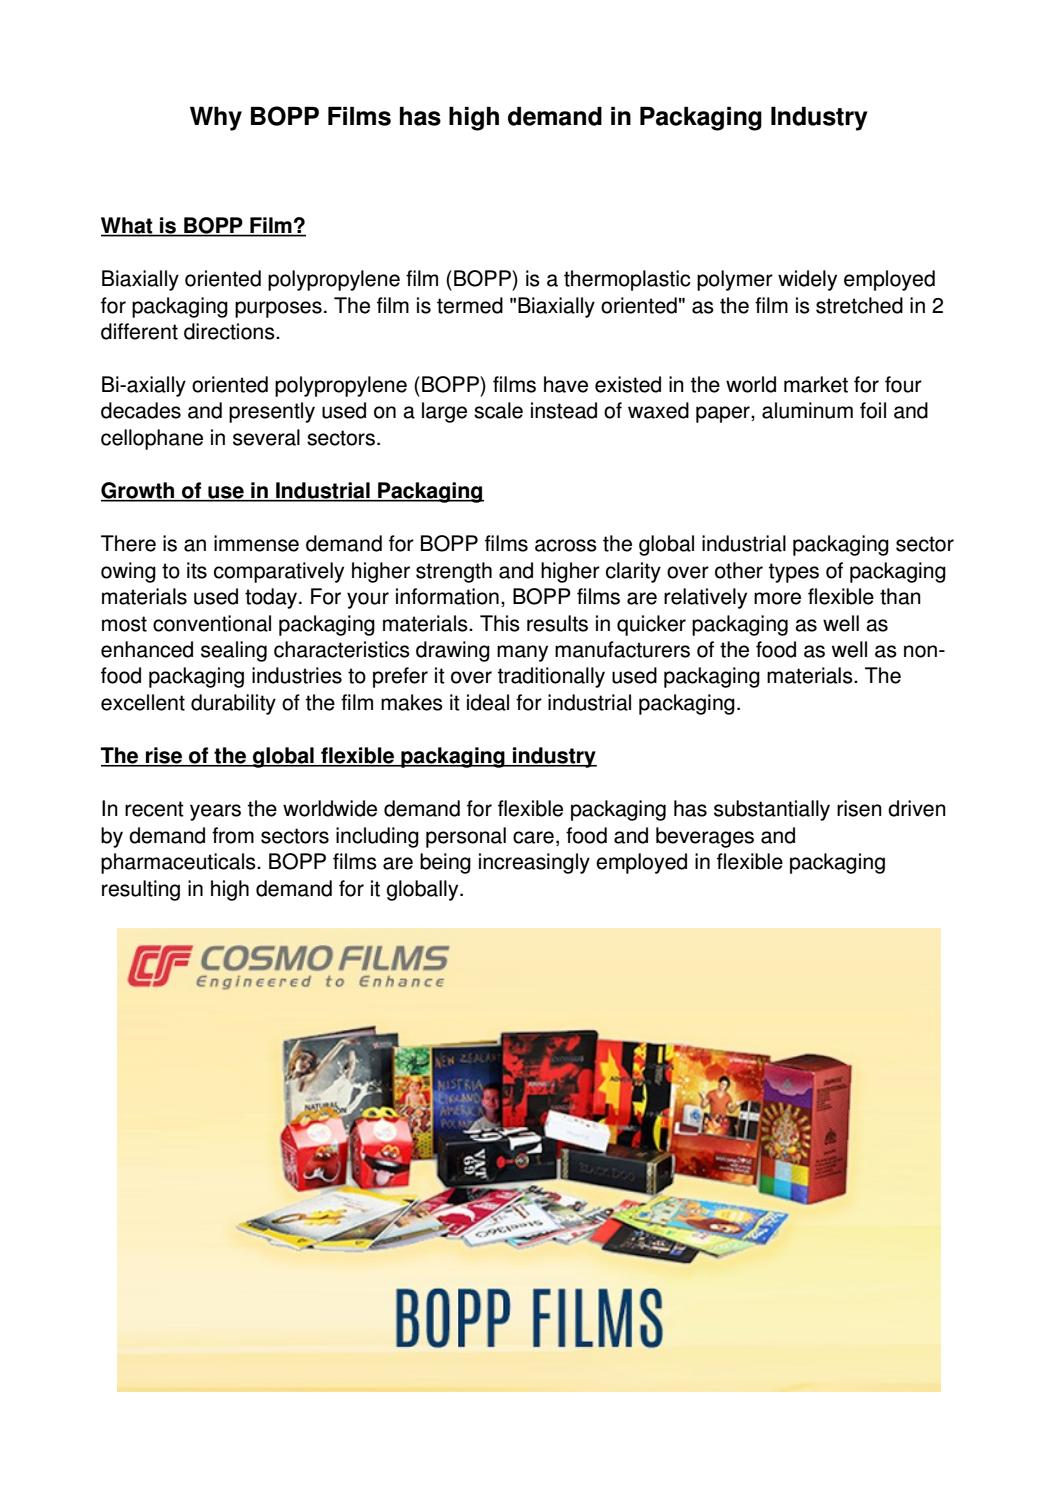 Why bopp films has high demand in packaging industry by